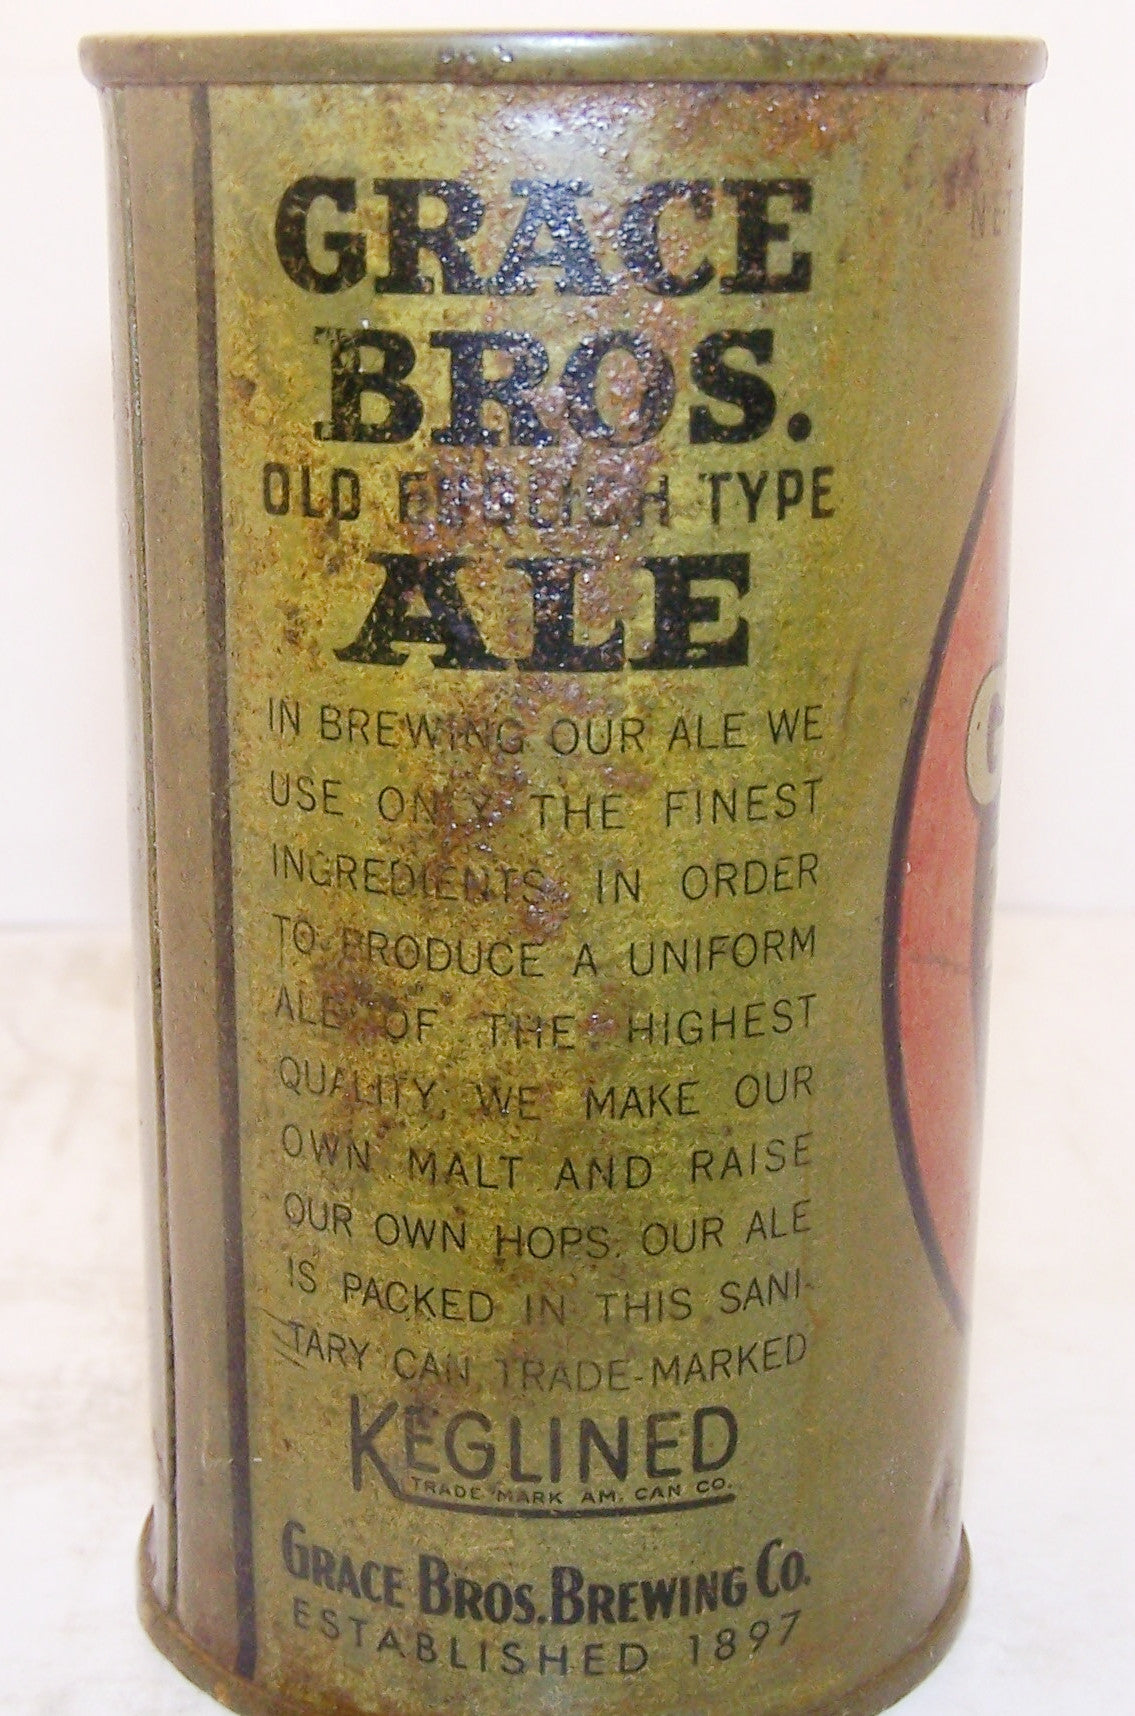 Grace Bros. English Type Ale, Lilek page # 307 Grade 3